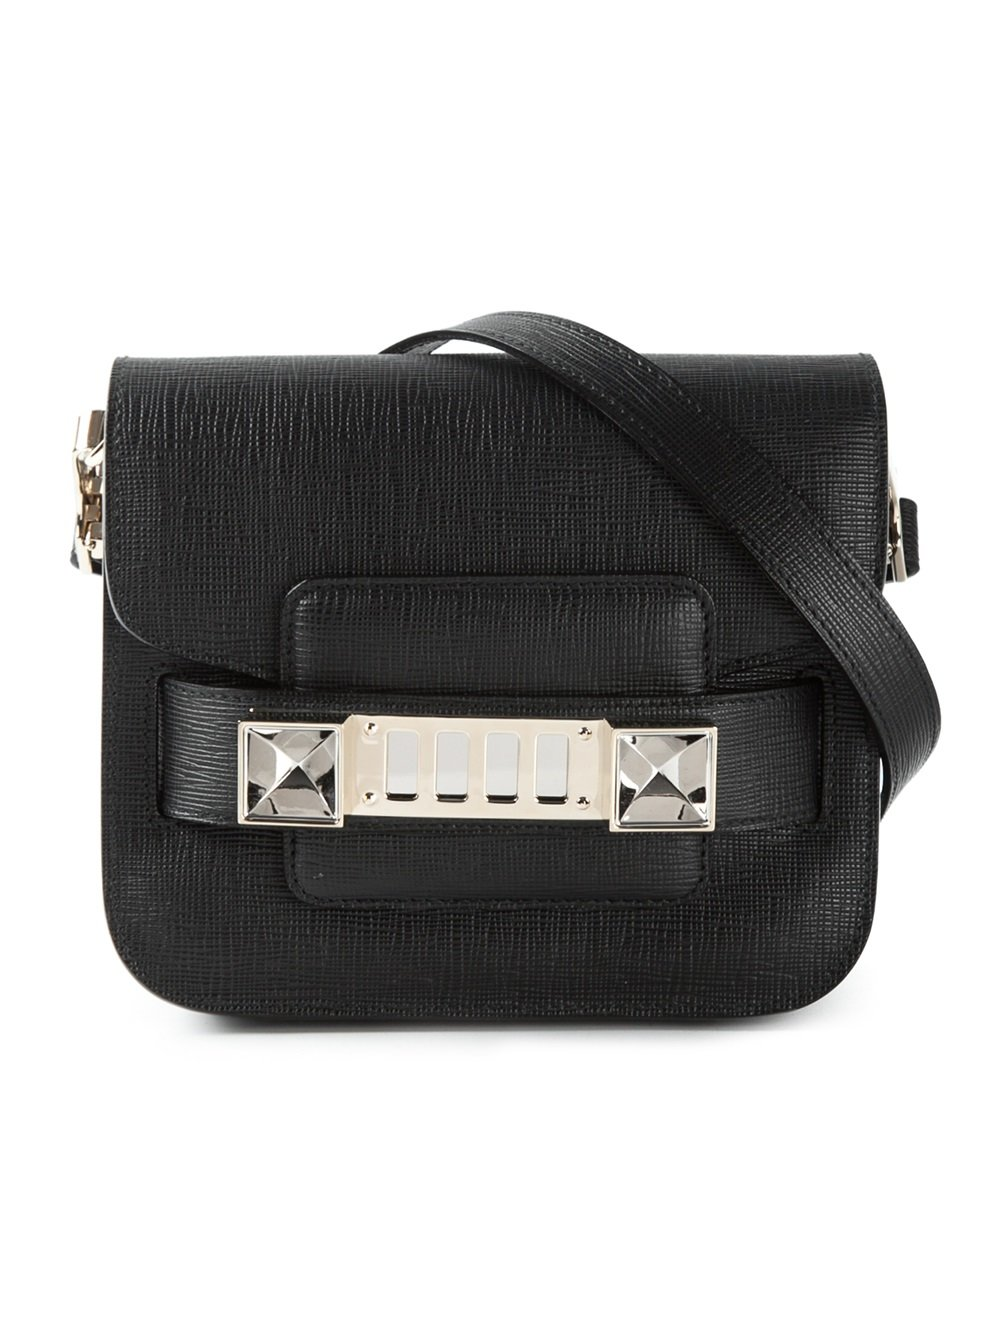 Proenza Schouler Black Leather PS11 Tiny Crossbody Bag